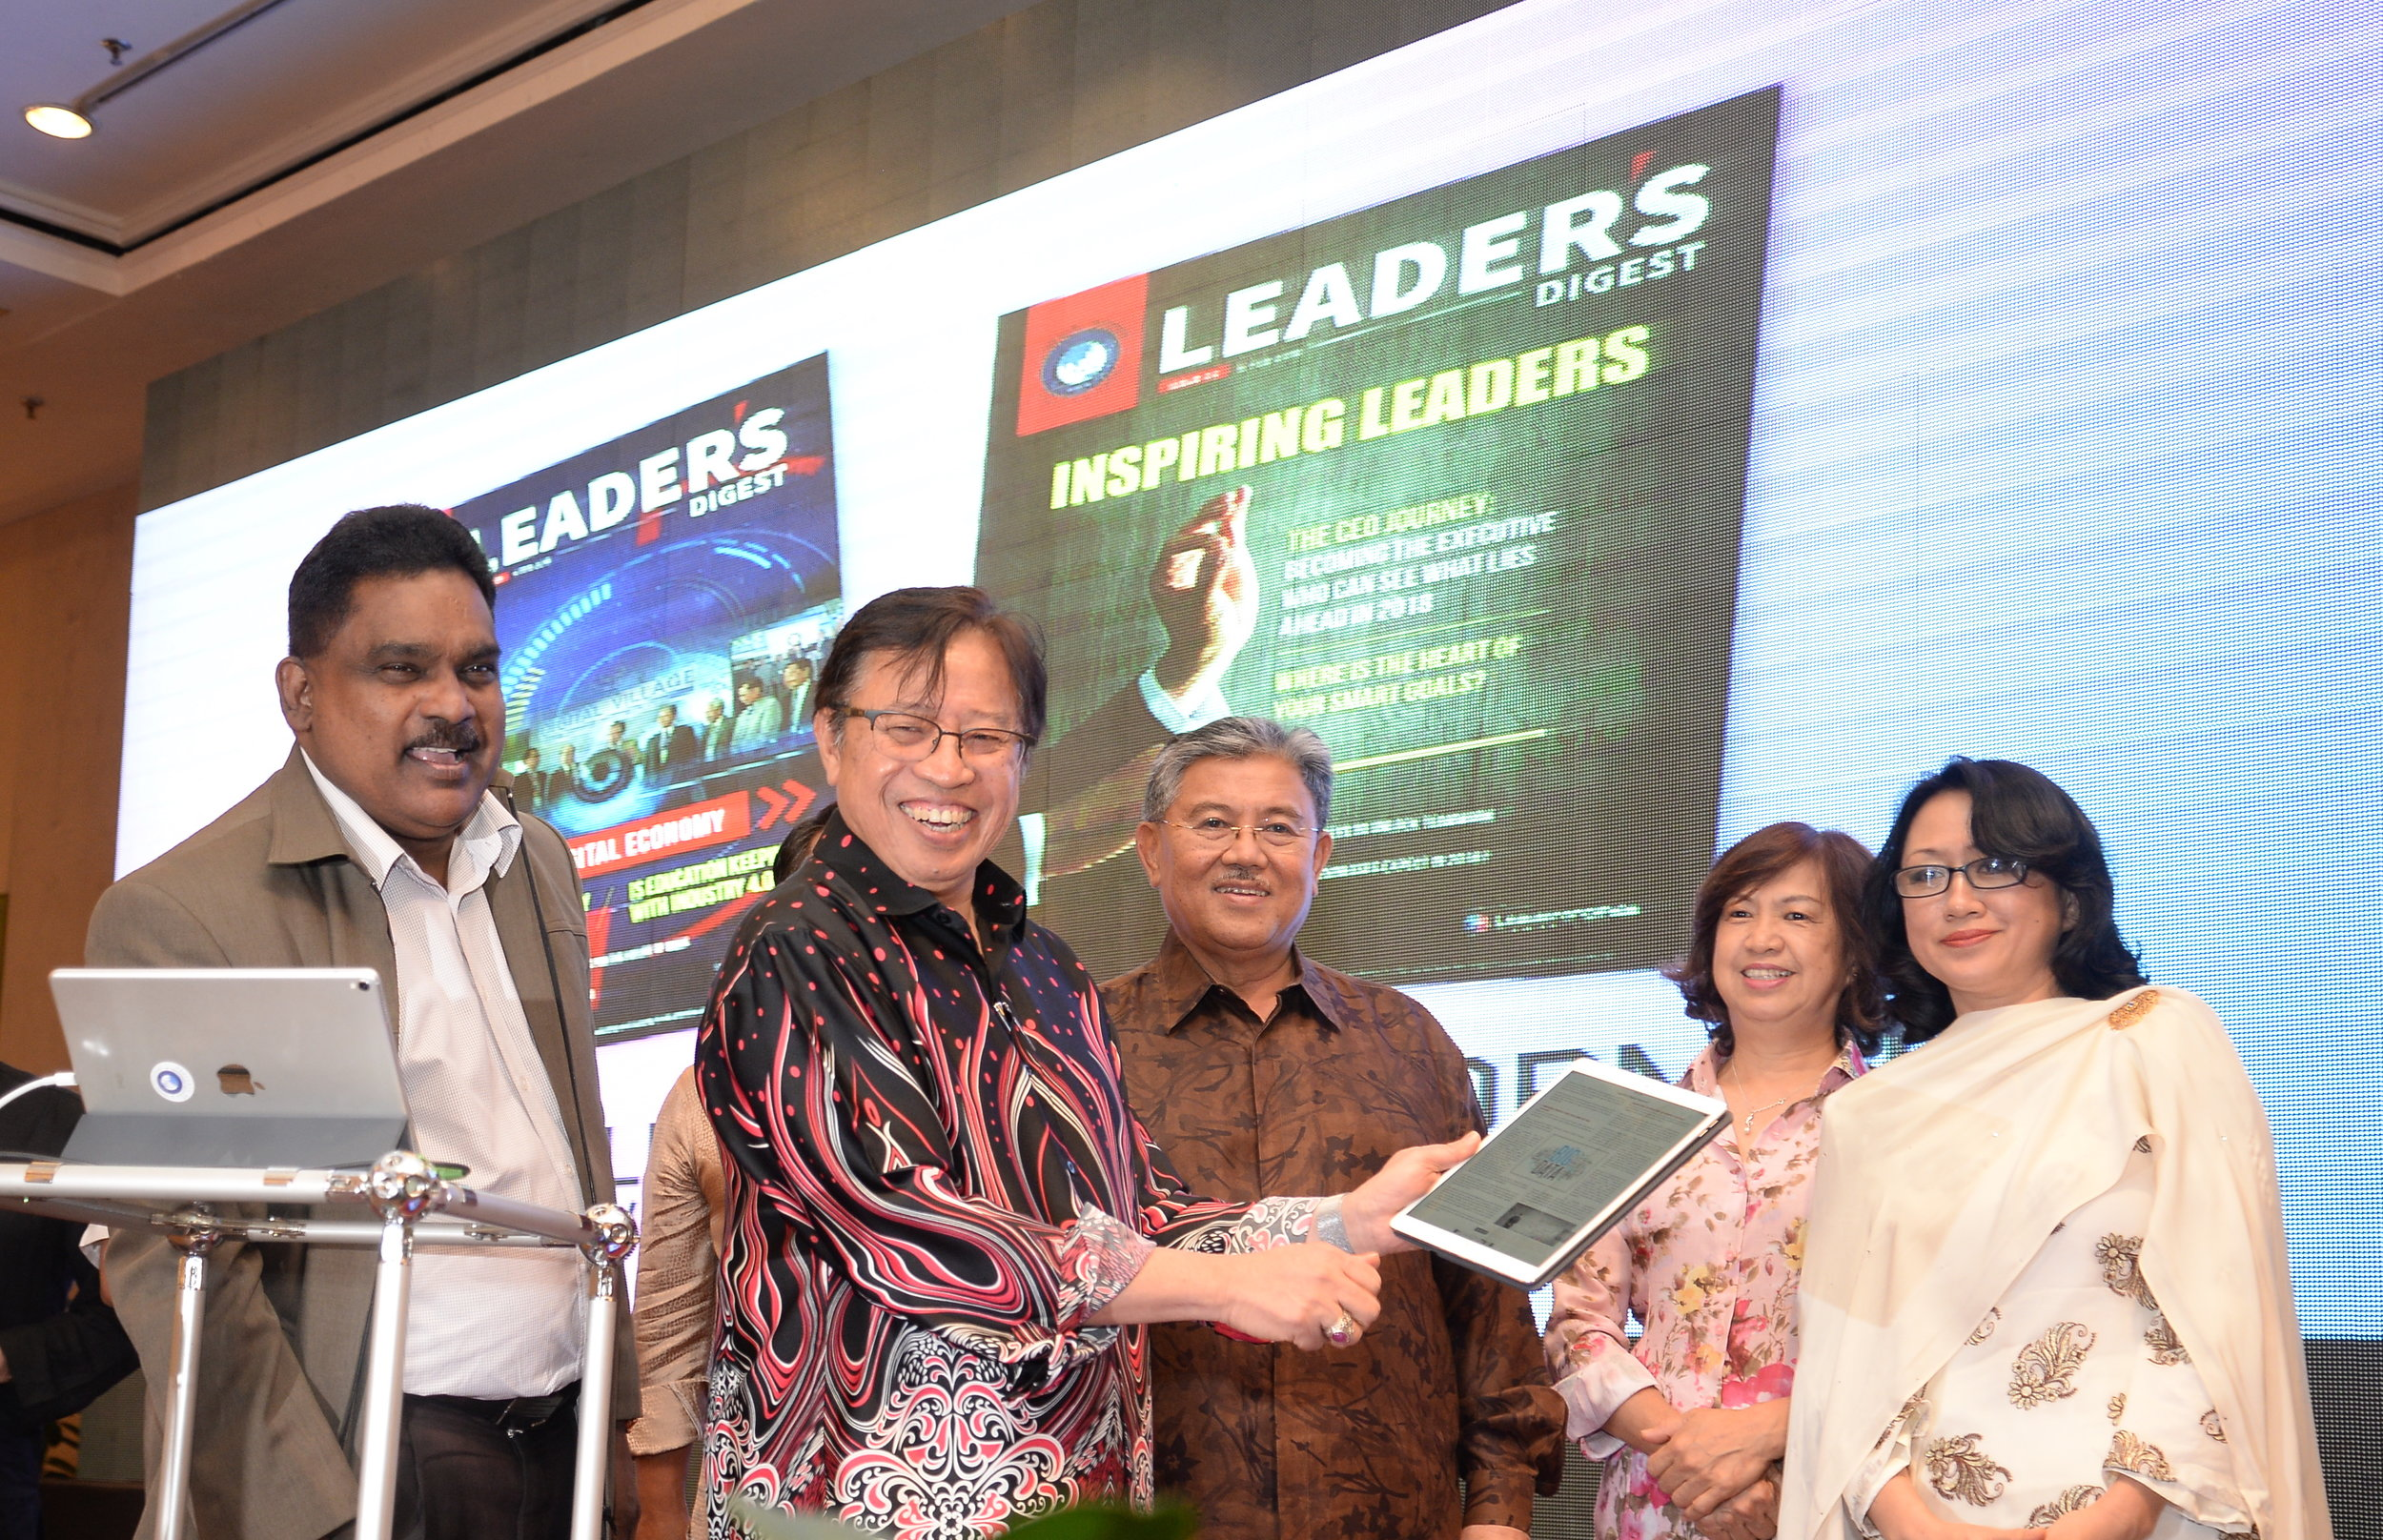 Abang Johari taps the tablet to symbolically launch Leader's Digest, witnessed by Morshidi (third right), Sabariah (right), Segaren (on Abang Johari's right) and others.